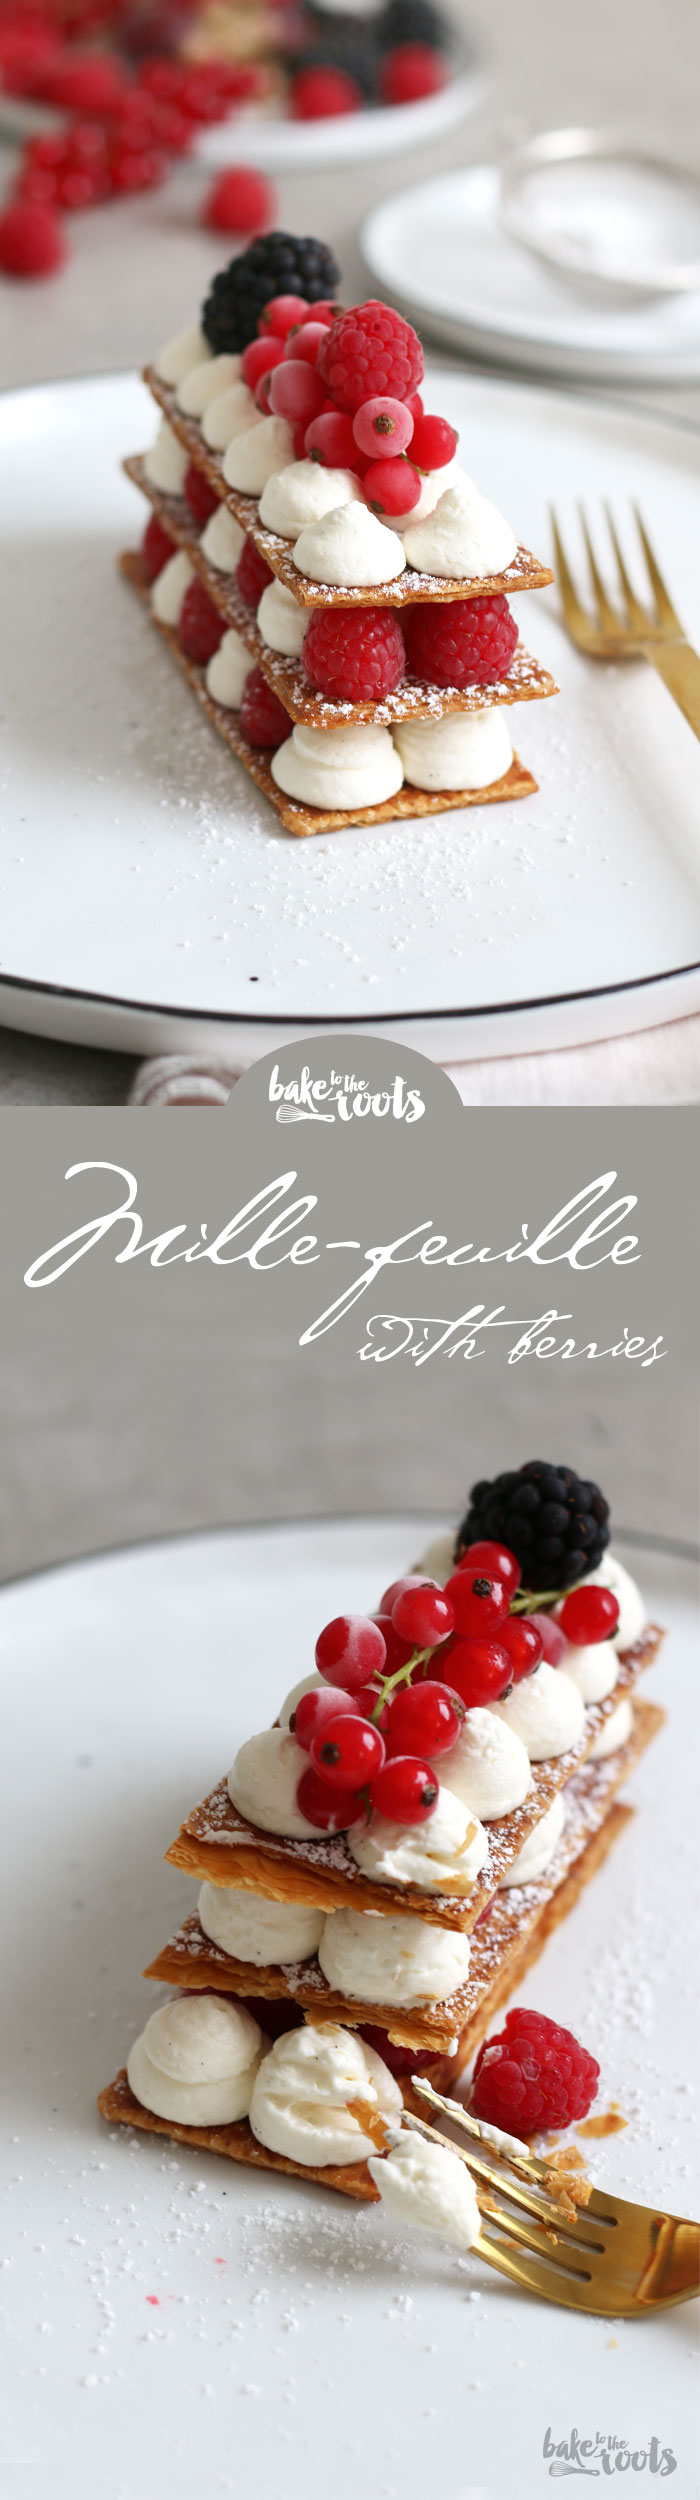 Delicious Mille-Feuille with Iced Berries | Bake to the roots